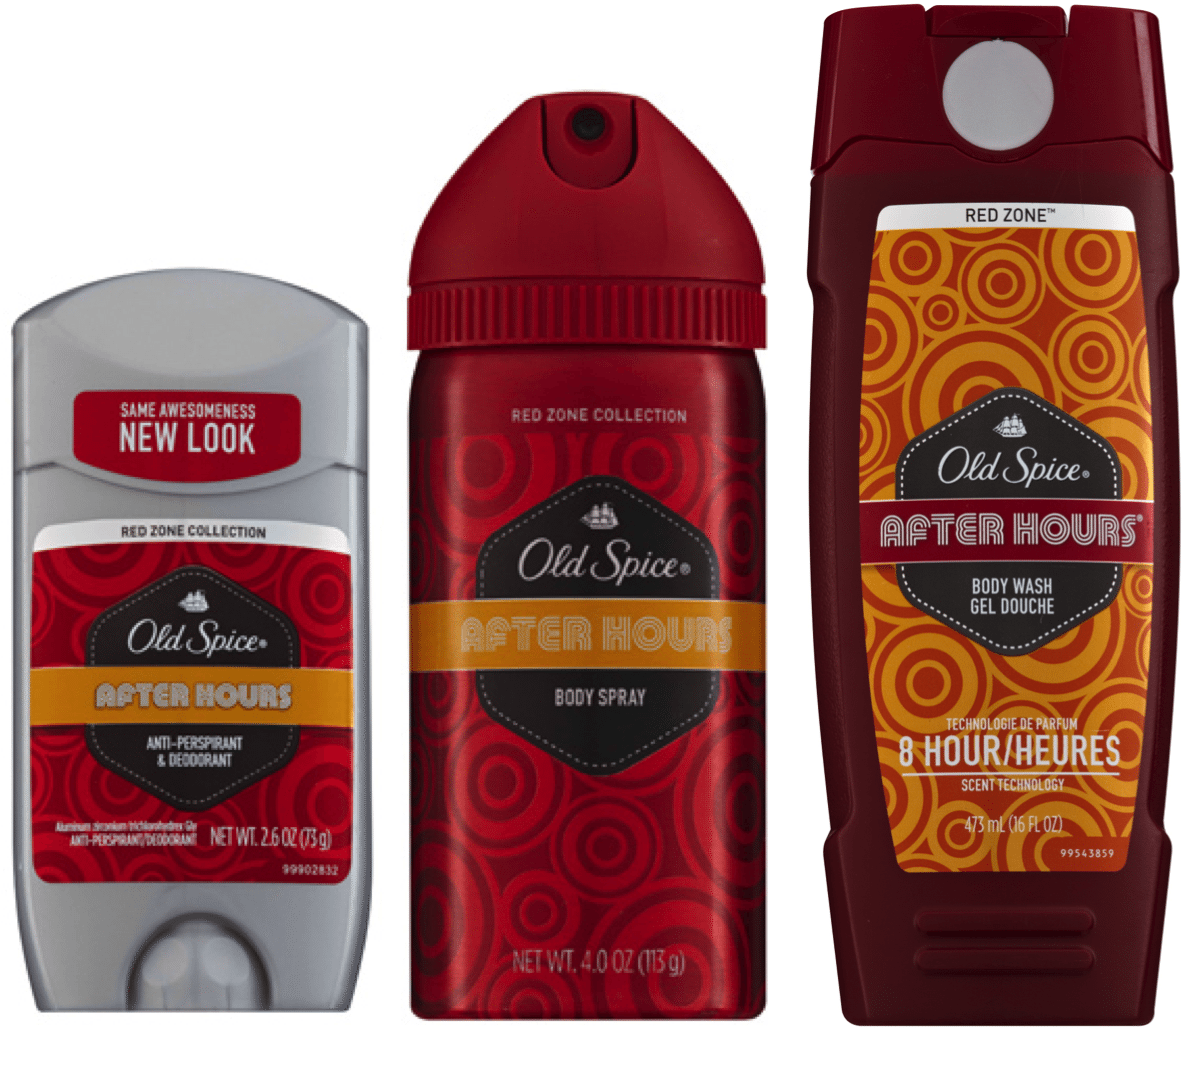 Father's Day, Fathers Day Gift Guide, Dad, Father's Day Gift Guide NZ 2013 , LUSH NZ, fathers day presents, Mildred and Co, Mildred&Co, what to buy dad, Old Spice, Old Spice After Hours, USHER, USHER Gift Set, kikki-k, Palmers Cocoa Butter, For Men, Rodd & Gun, Walker & Hall, Mad Men, Whiskey Glasses, Cufflinks, Aftershave, fashion media nz, beauty media nz, fashion blog nz, style blog nz, beauty blog nz, angie Fredatovich, gurlinterrupted.com